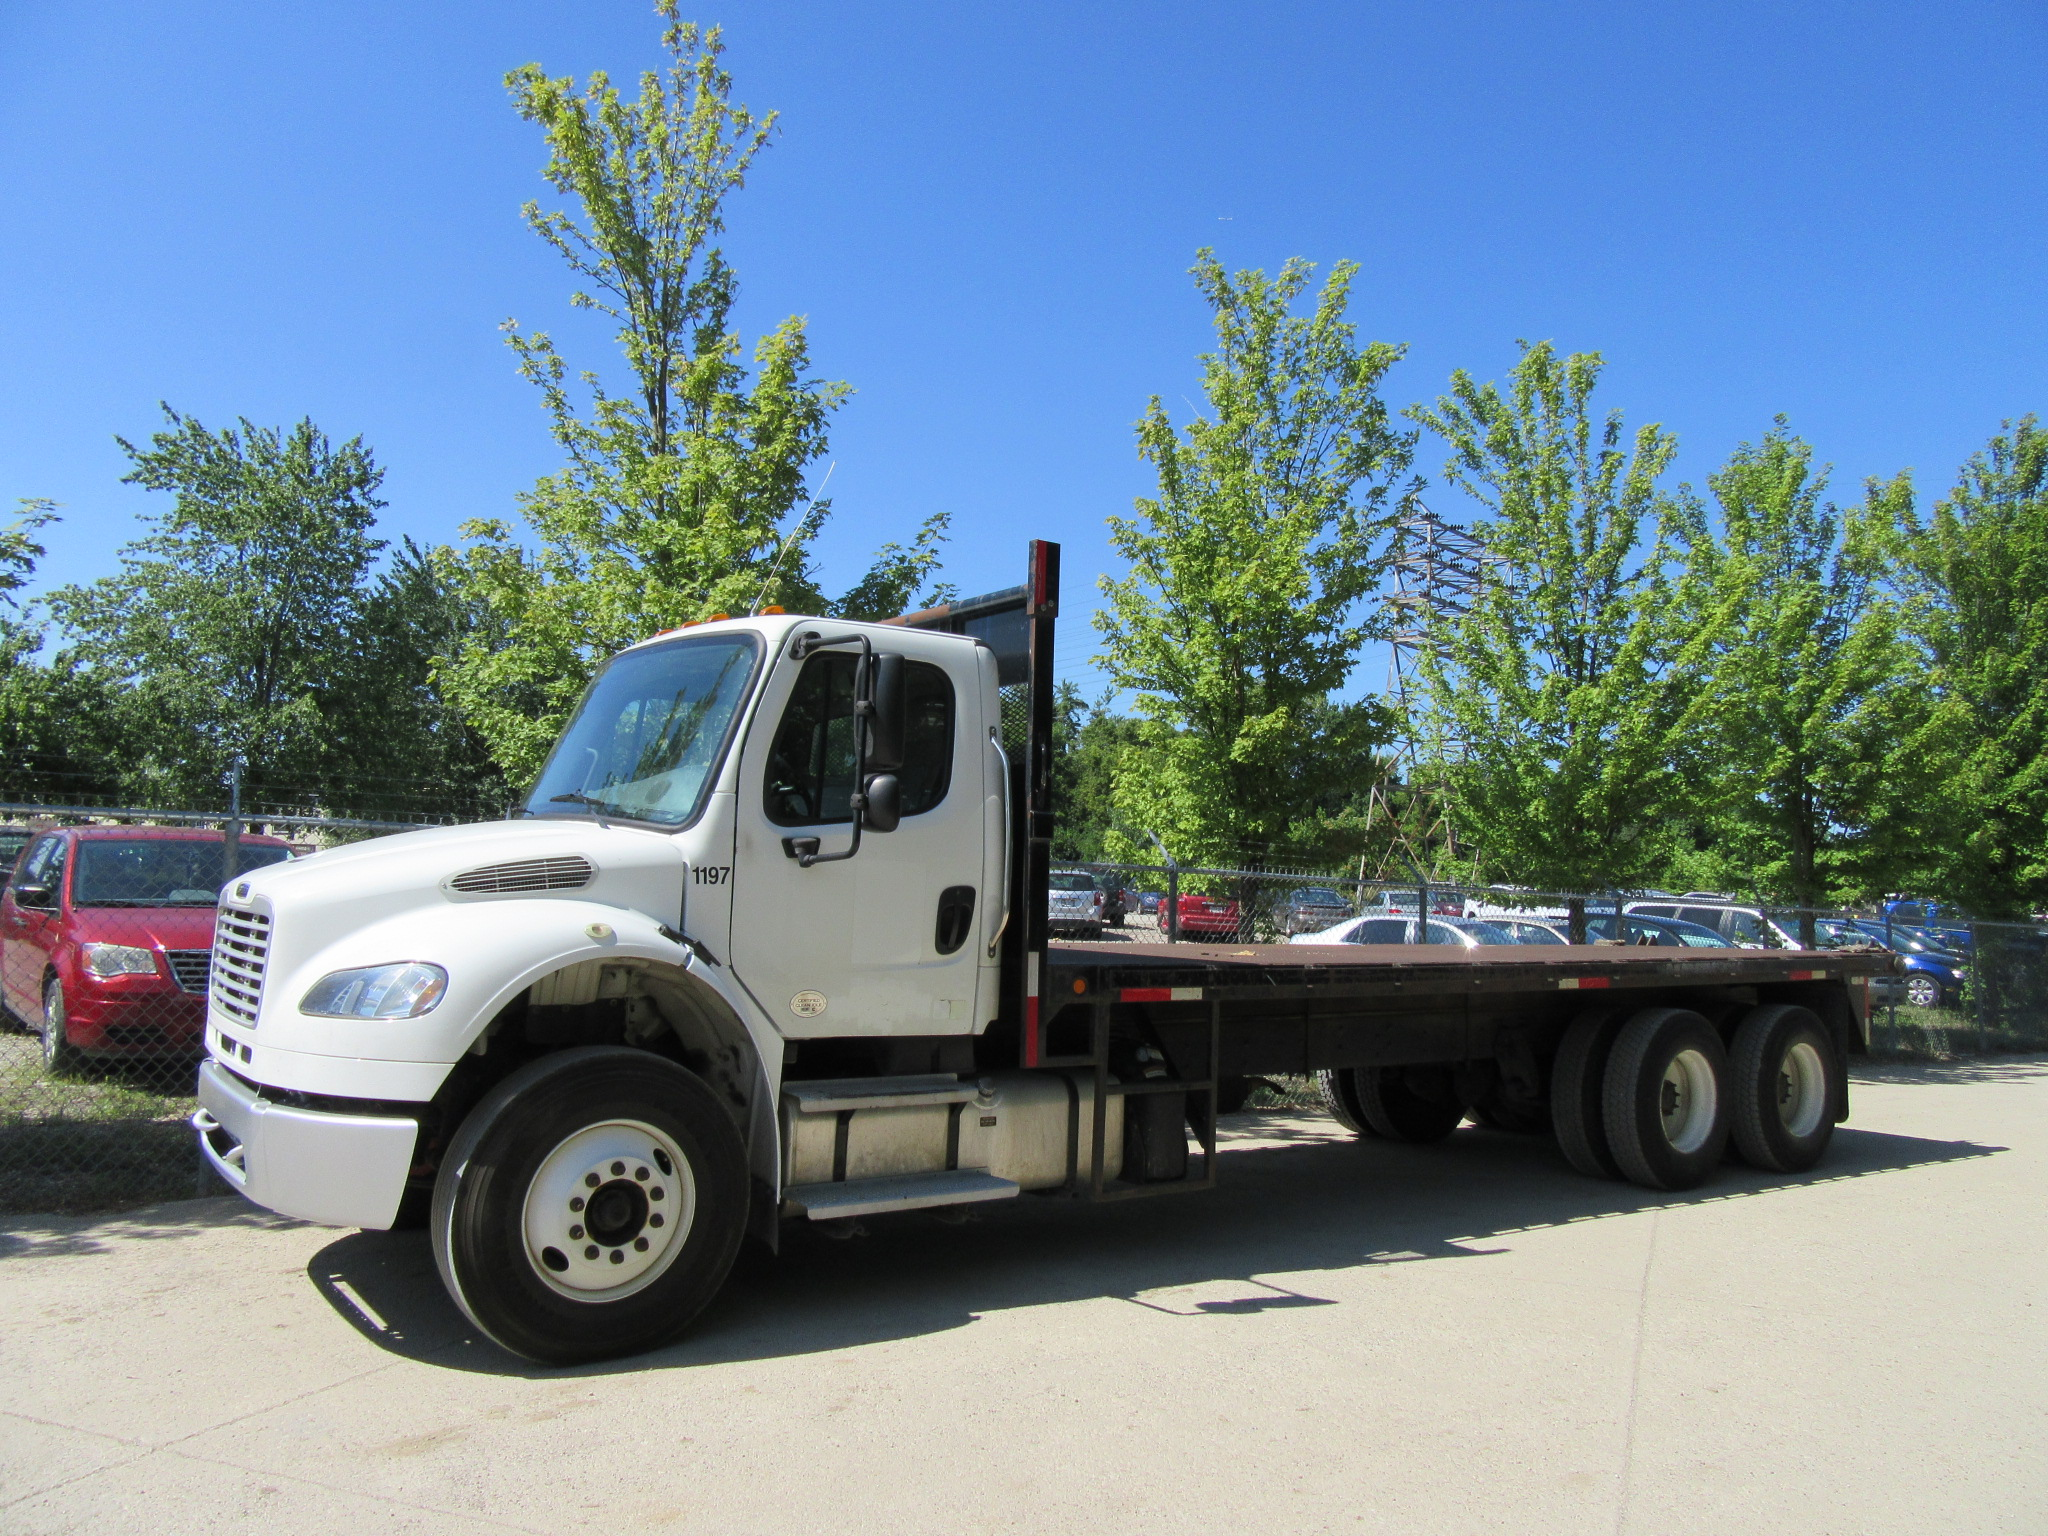 Volvo Of Princeton >> Flatbed Trucks Archives - D.W. Lift Sales, Inc